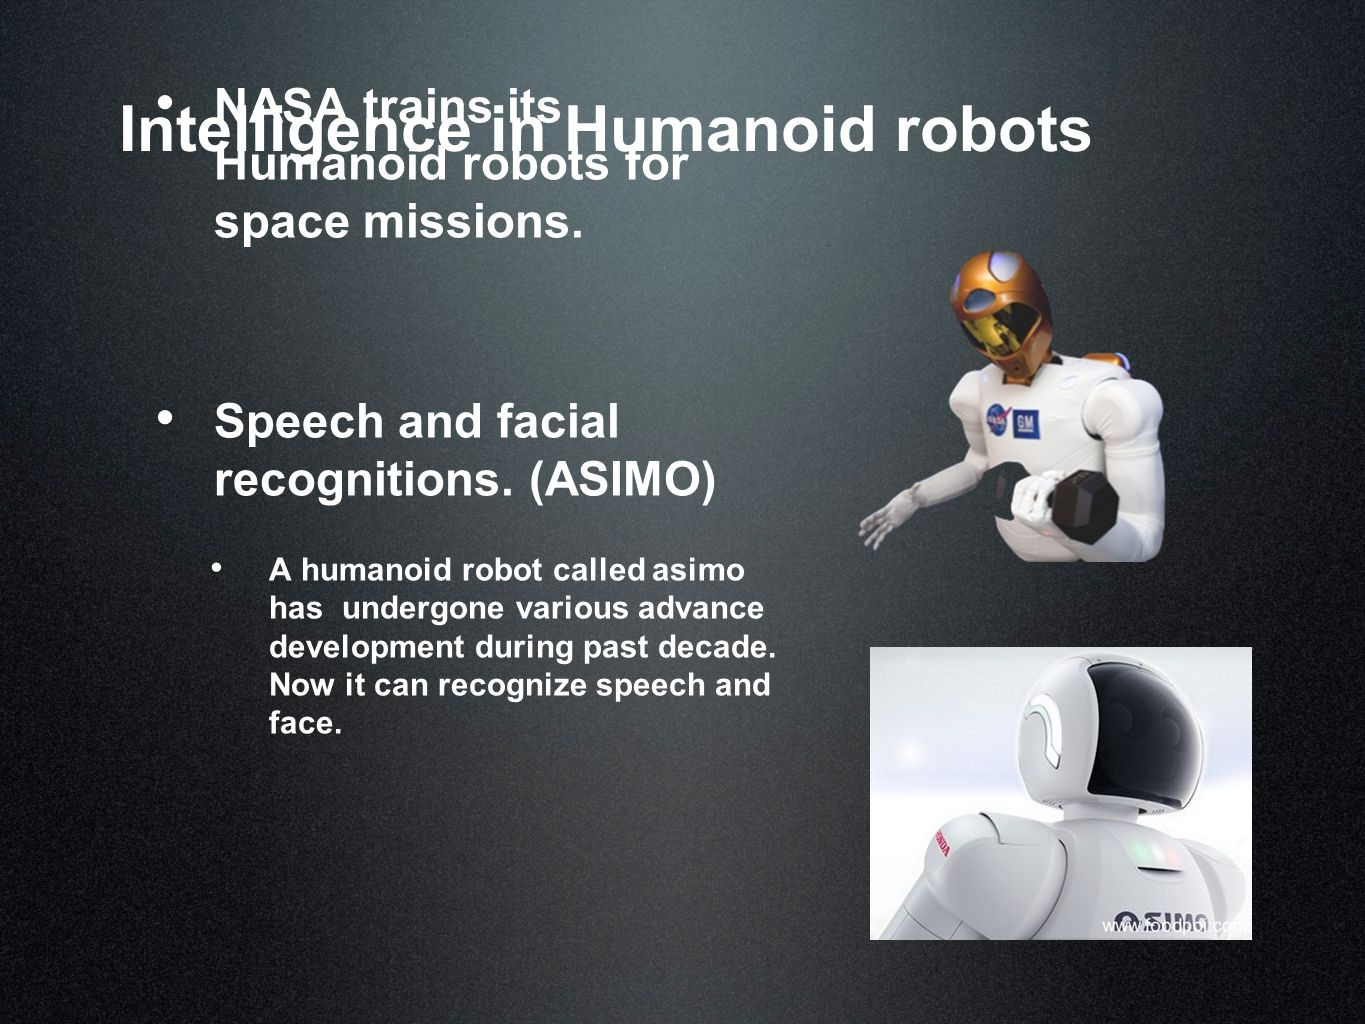 Robonaout R2 The dexterous robot not only looks like a human but also is designed to work like one.